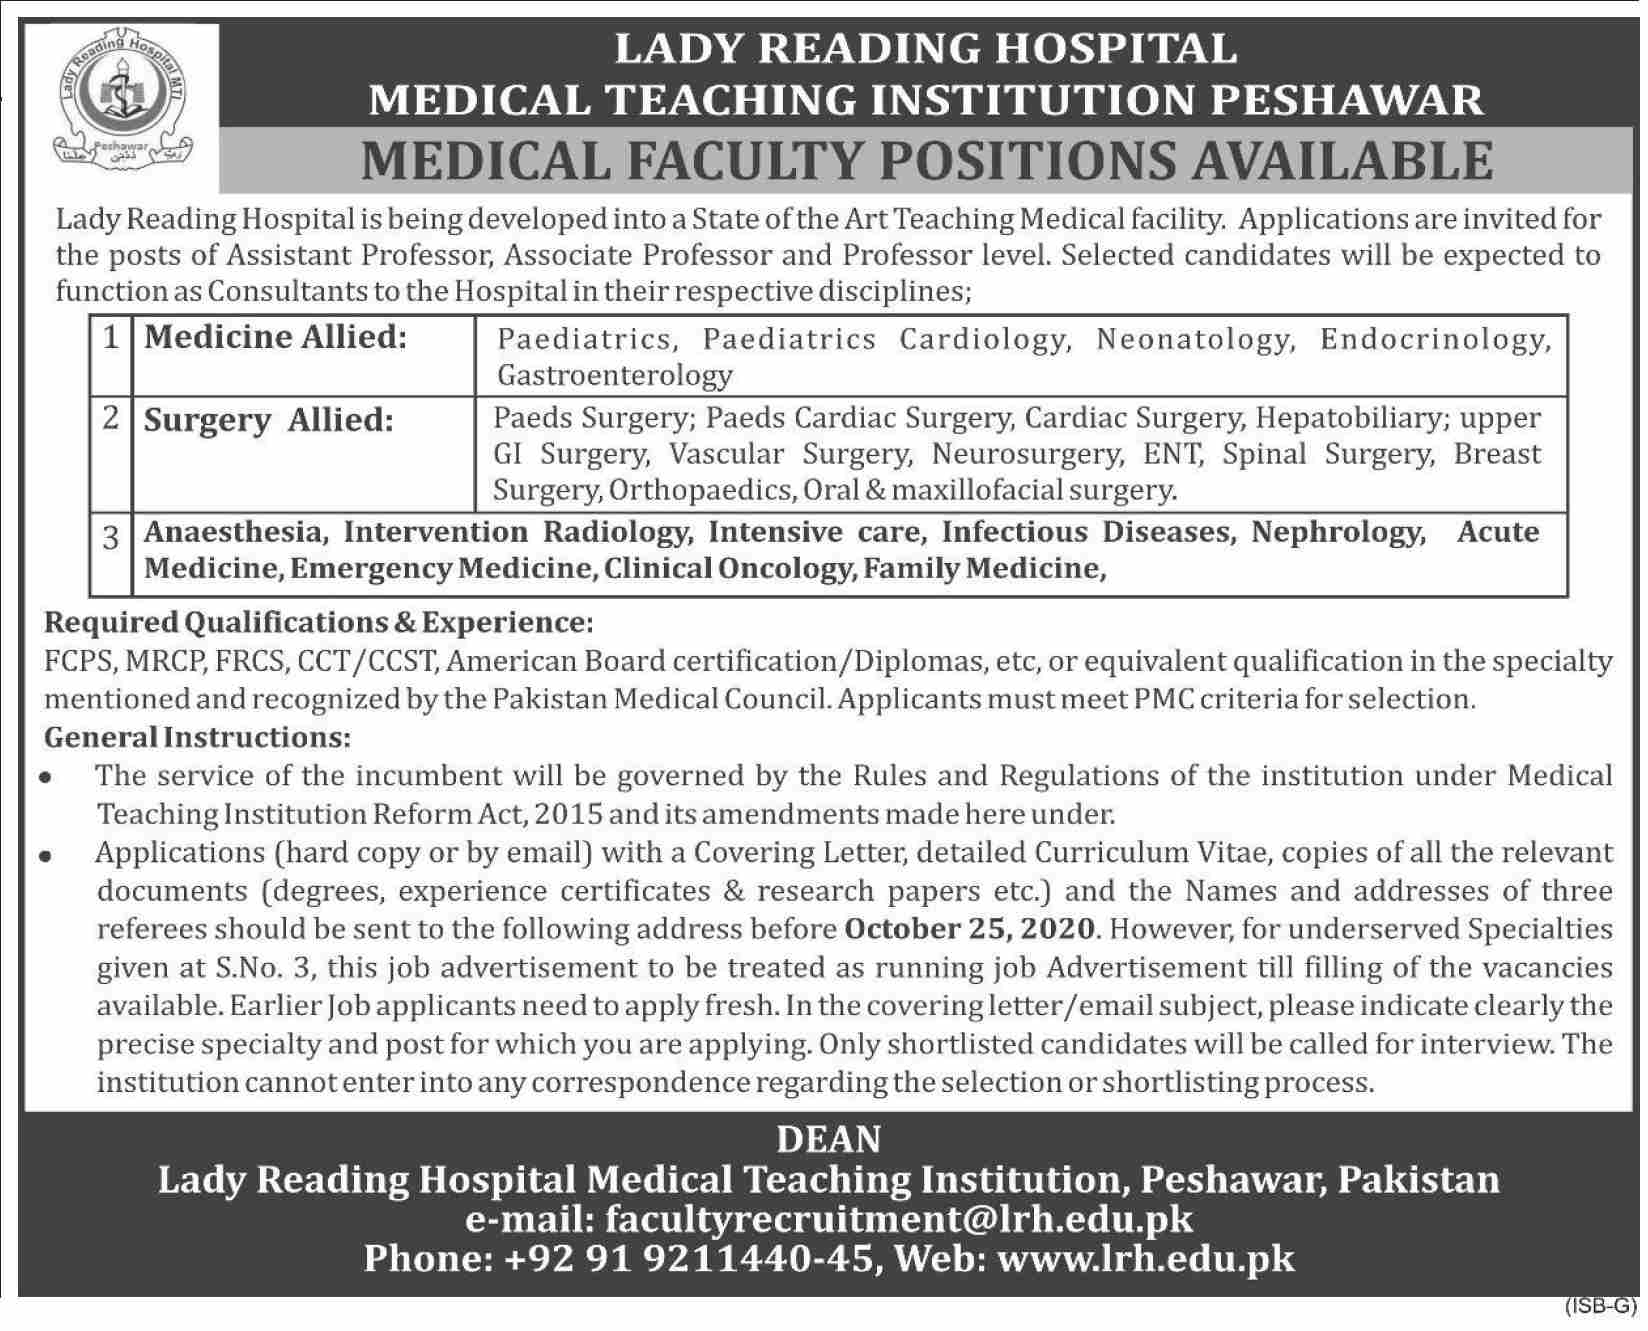 Lady Reading Hospital Medical Teaching Institution Peshawar Medical Faculty New Jobs 2020Lady Reading Hospital Medical Teaching Institution Peshawar Medical Faculty New Jobs 2020